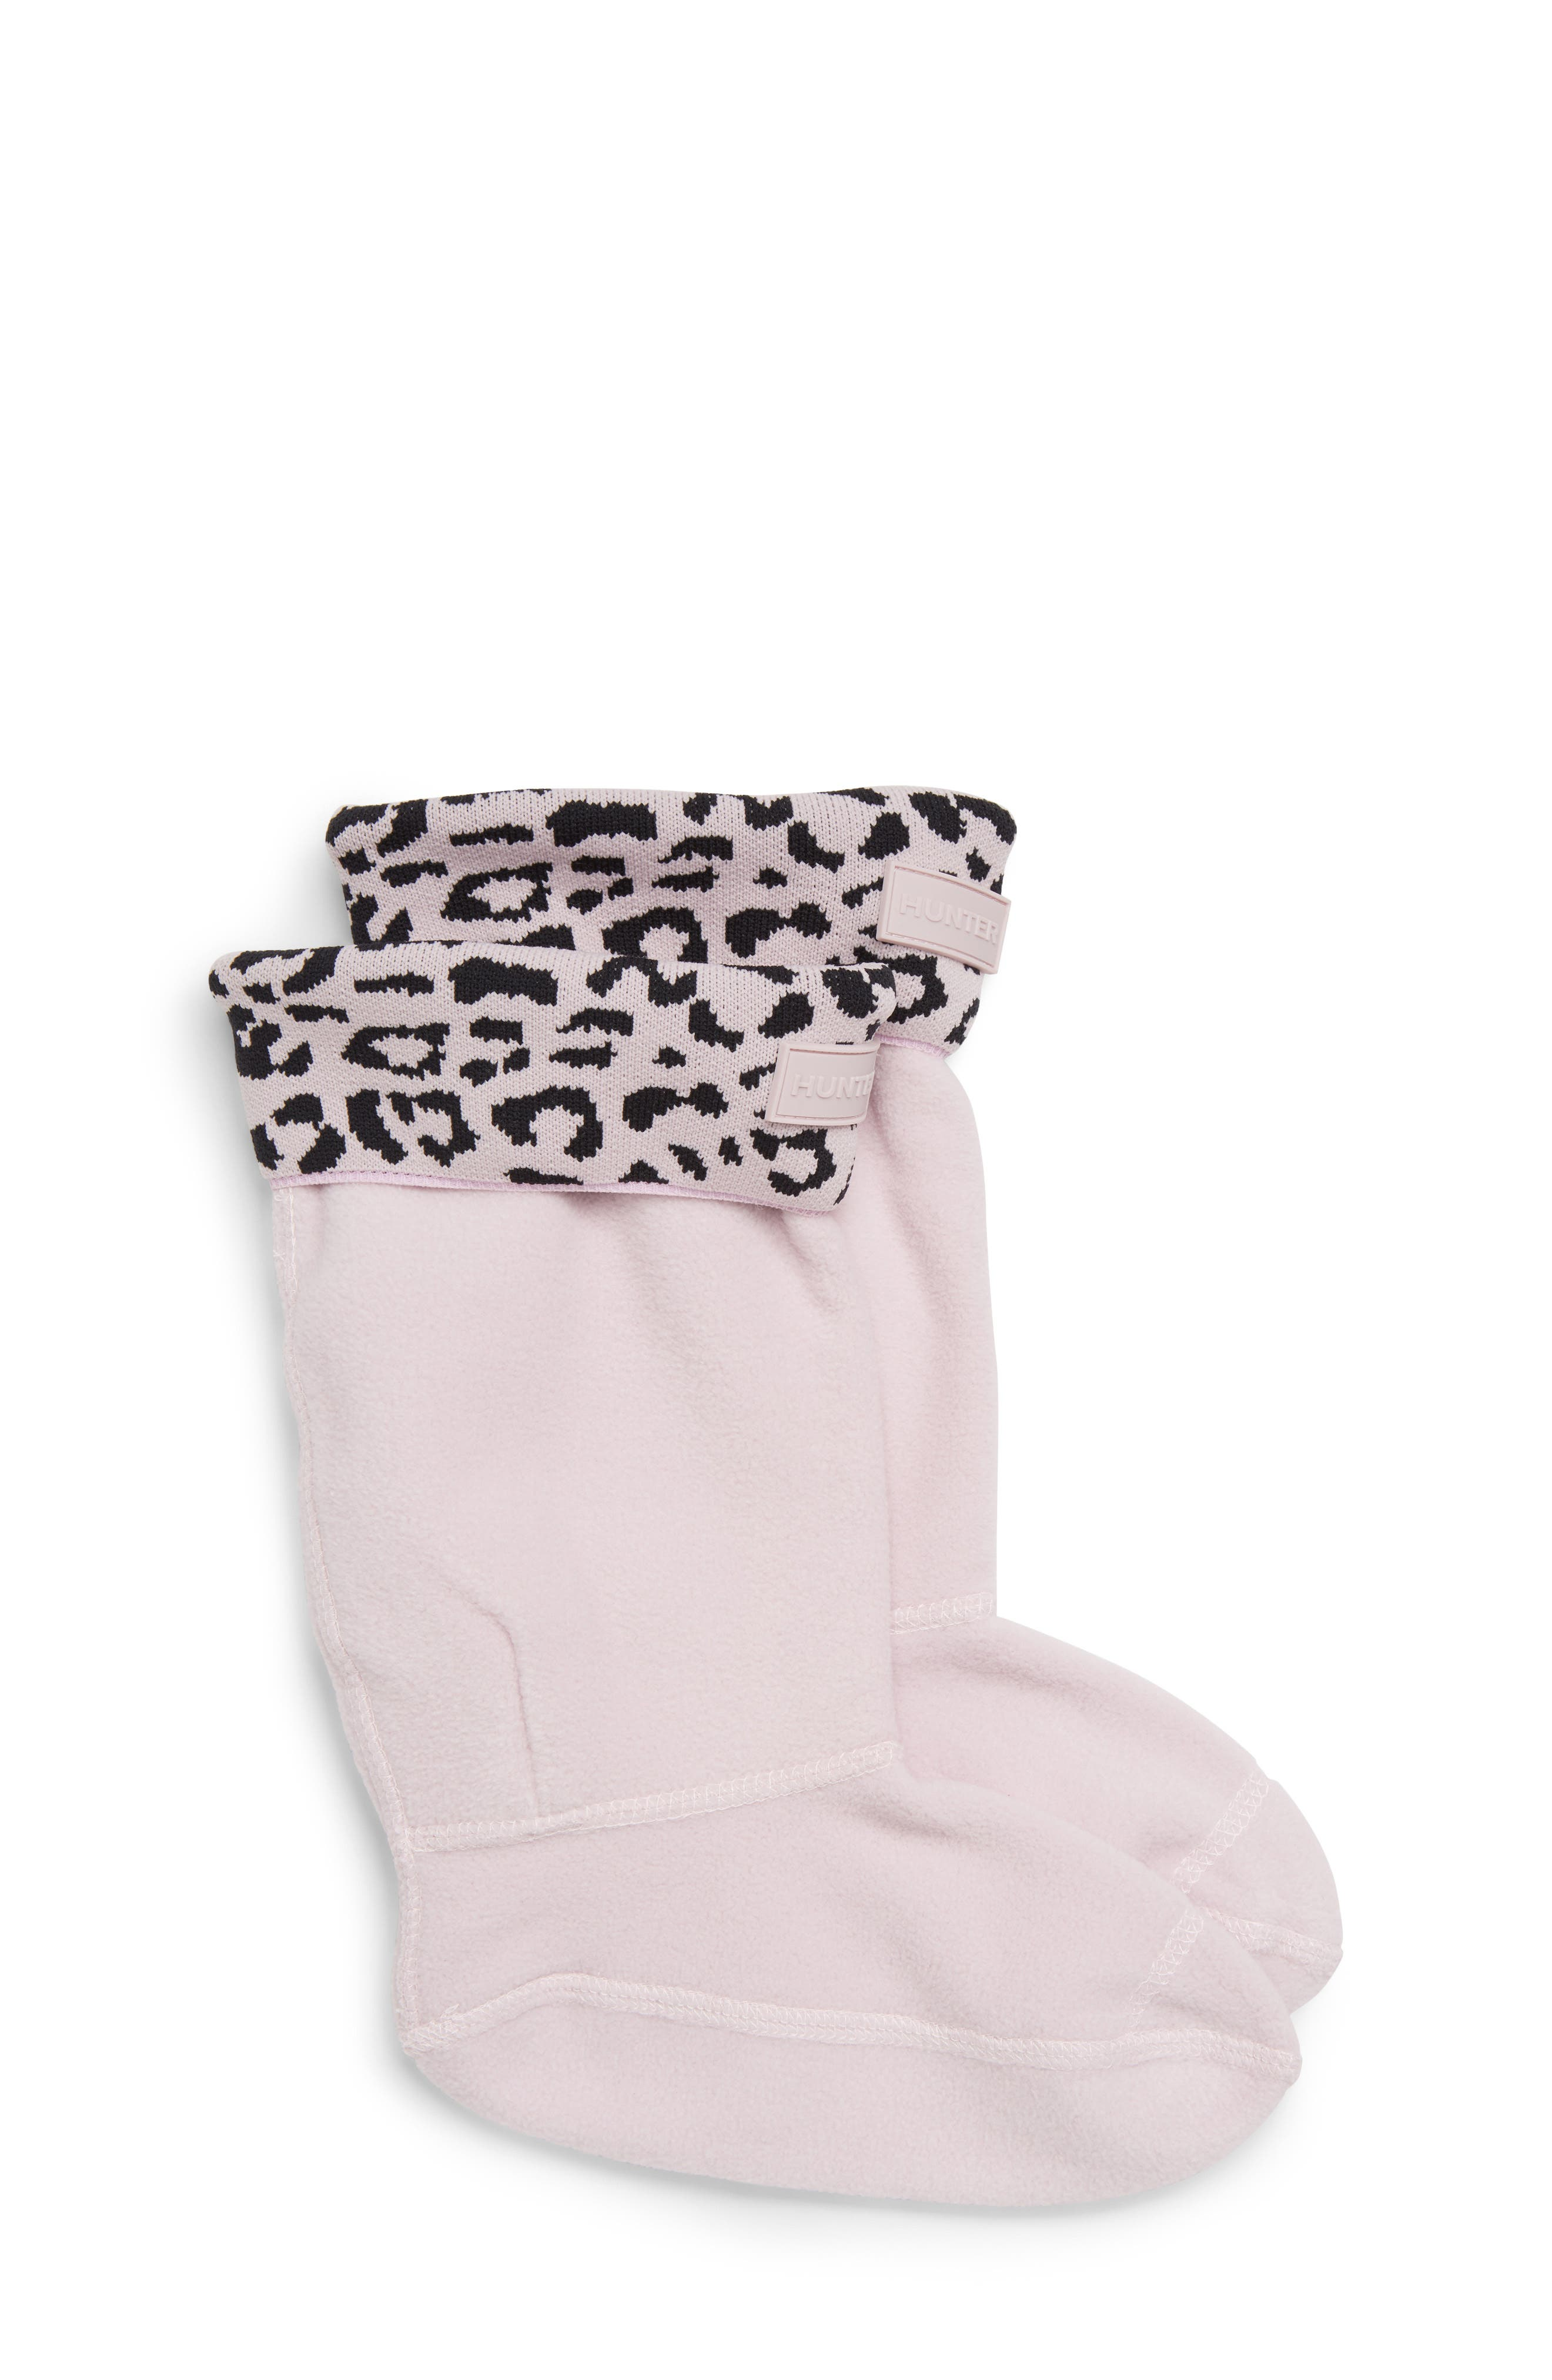 Girls Hunter Snow Leopard Cuffed Boot Socks Size XL (46)  Pink